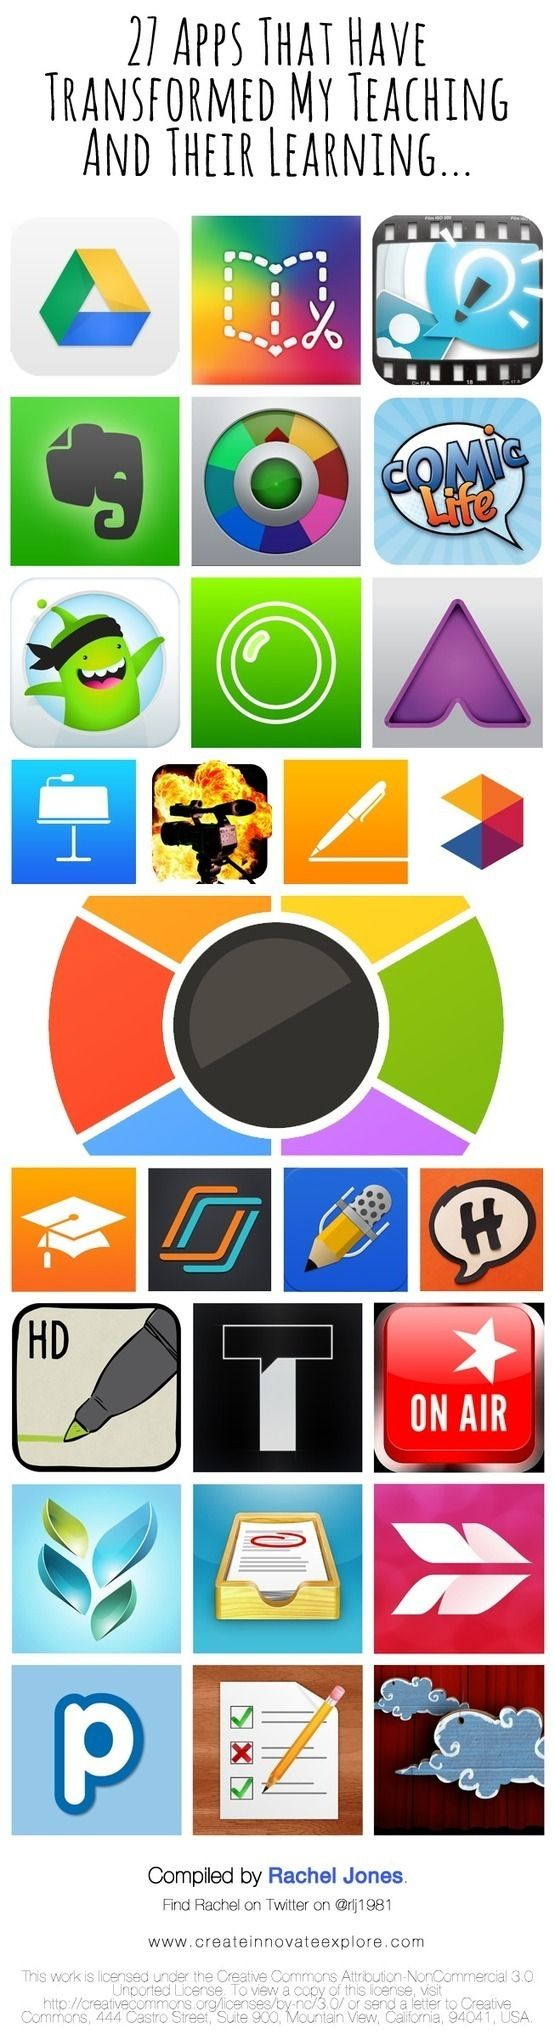 27 Apps that have changed my Teaching and Learning Practice – Updated – RachelJones « Educacion – articuloseducativos.es